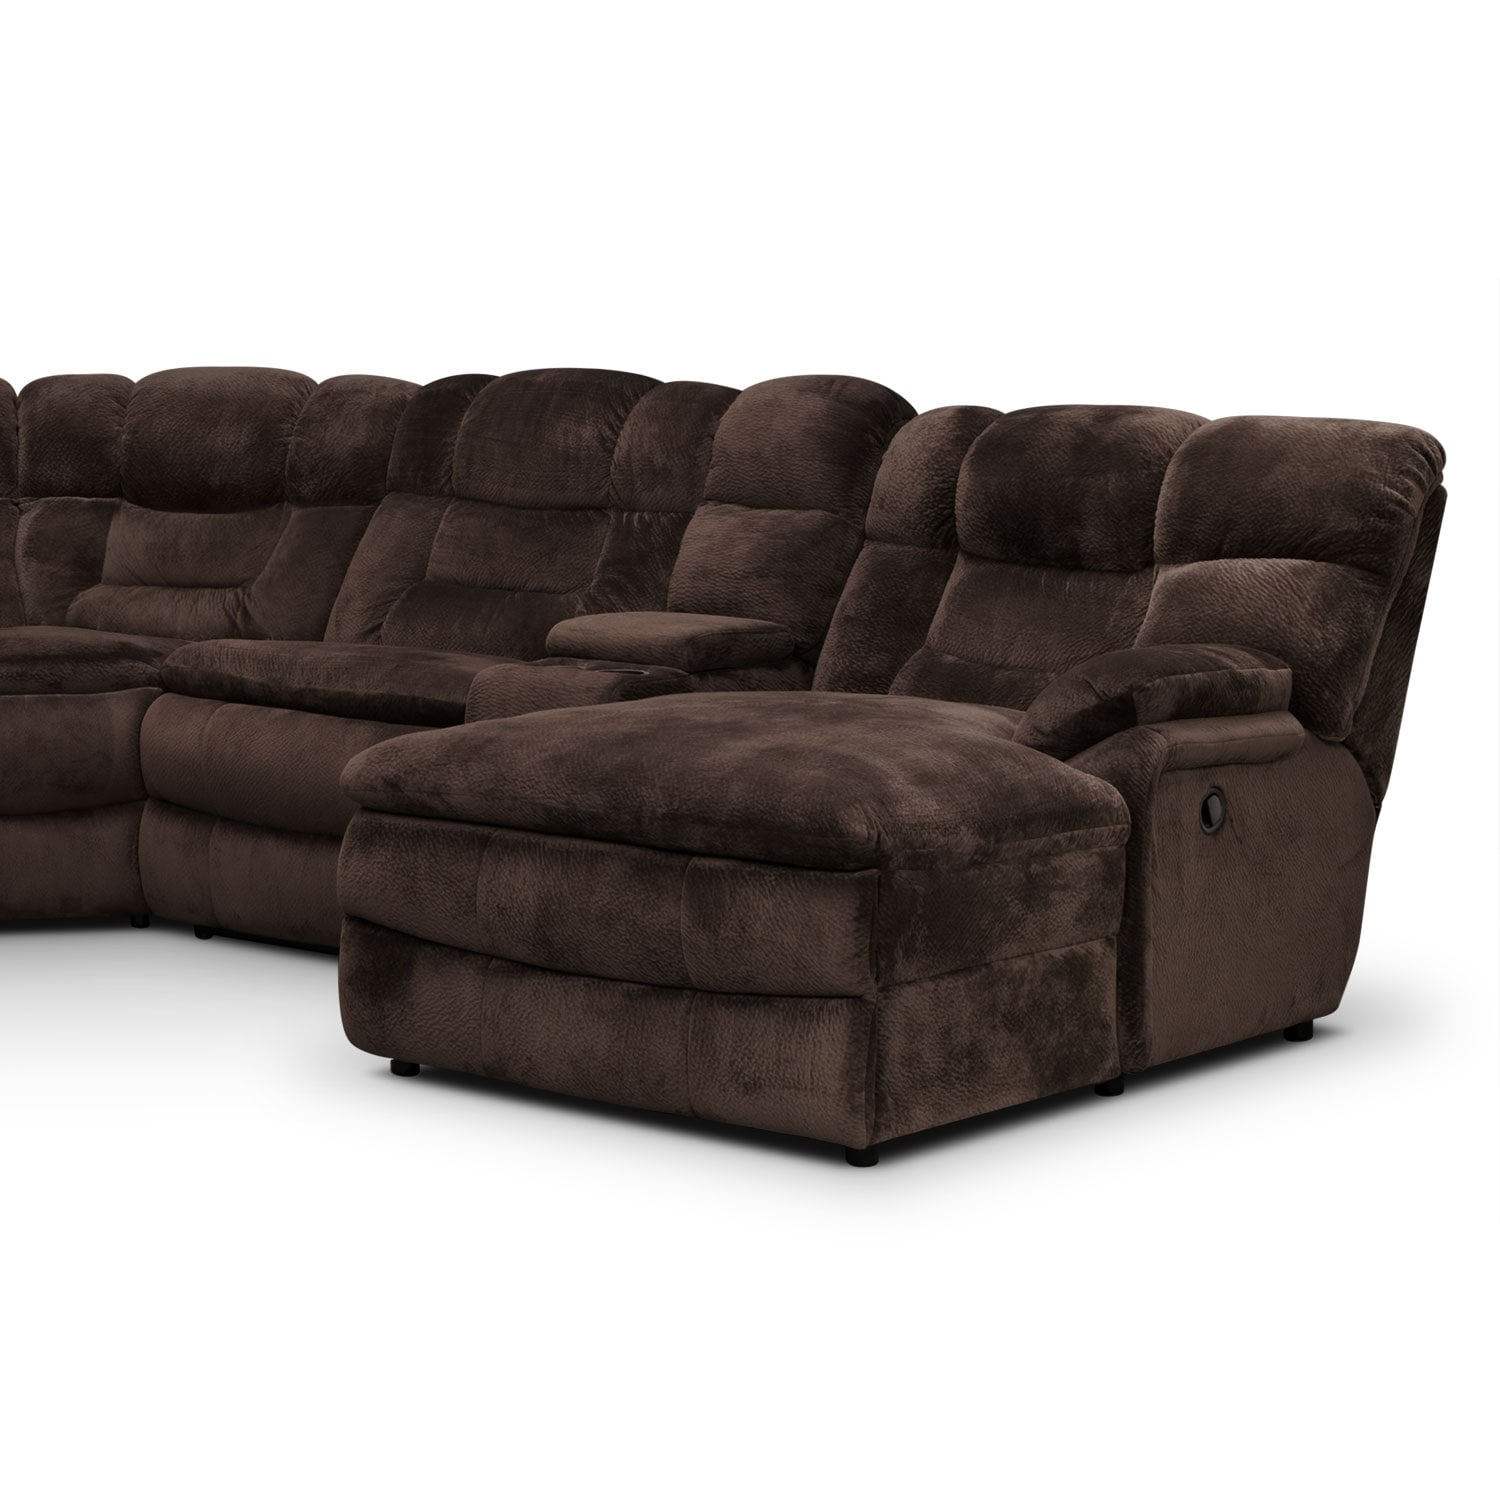 Big Softie 6 Piece Power Reclining Sectional With Right